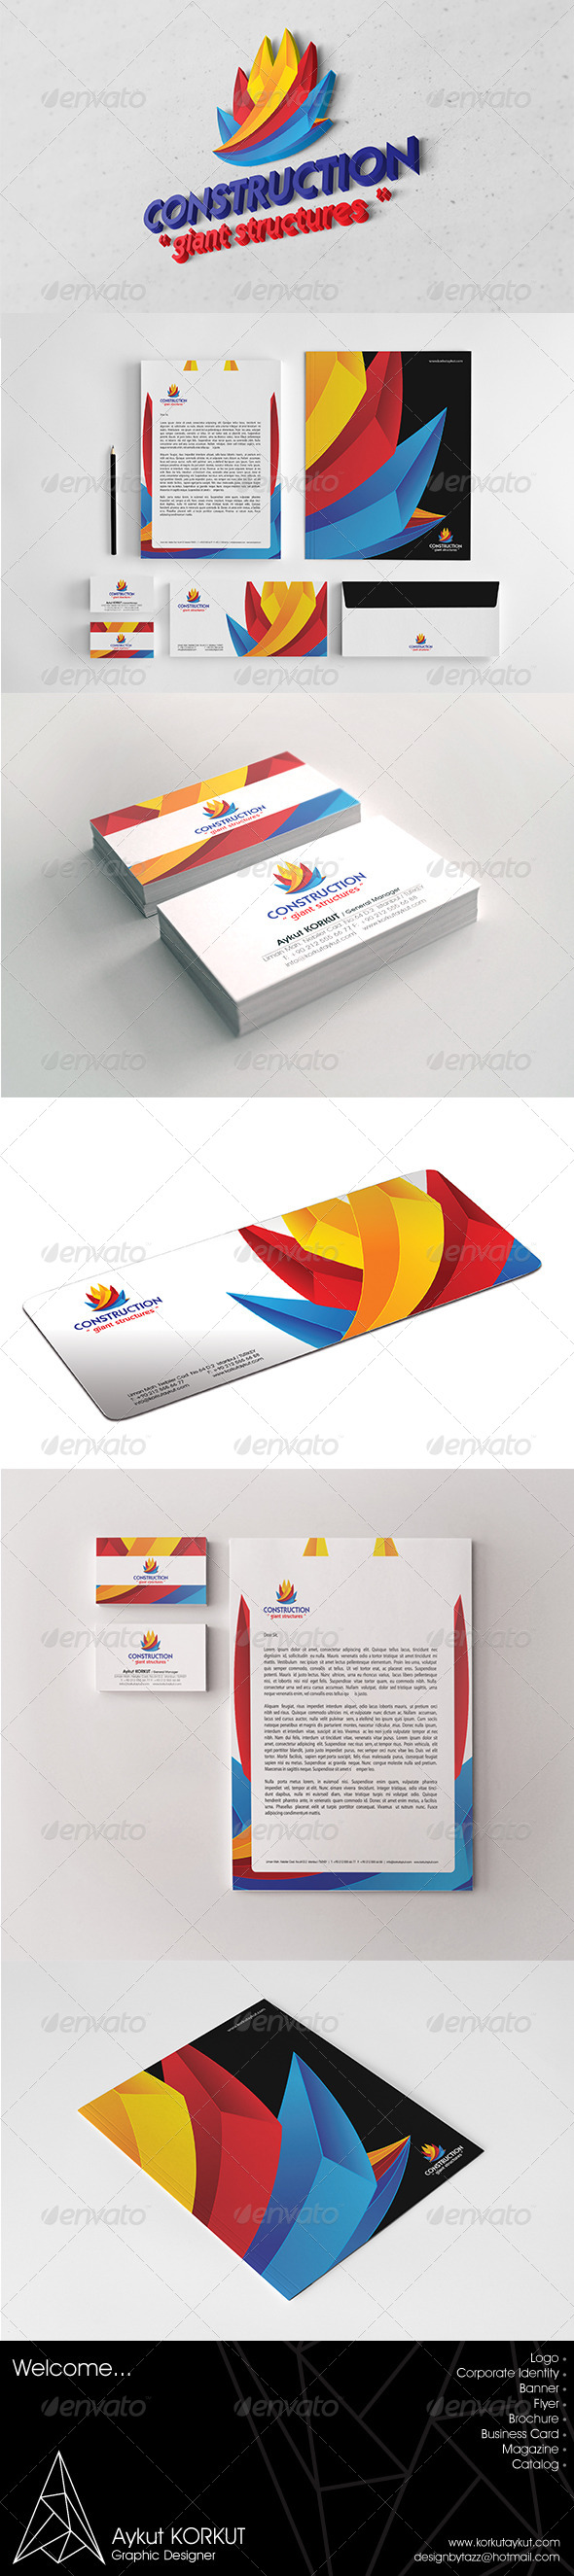 Construction Corporate Identity Package - Stationery Print Templates